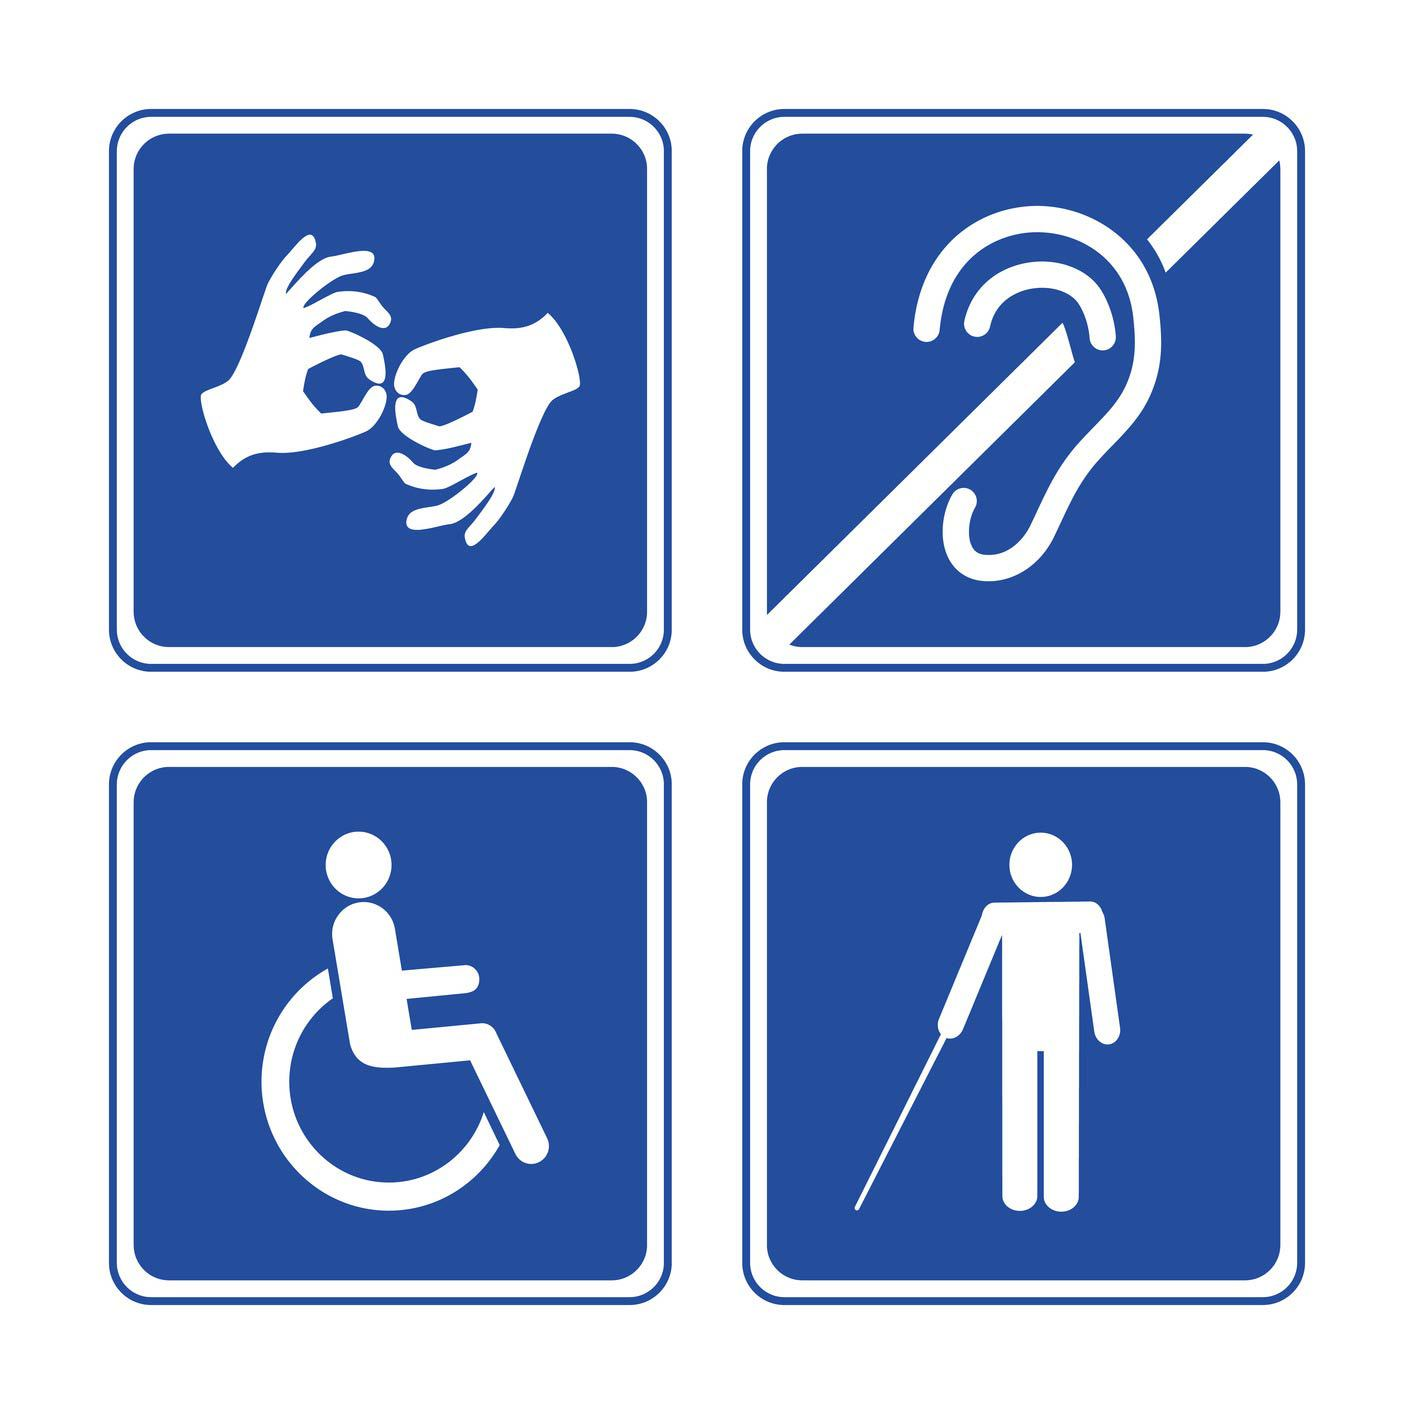 Image the symbols of people with disabilities